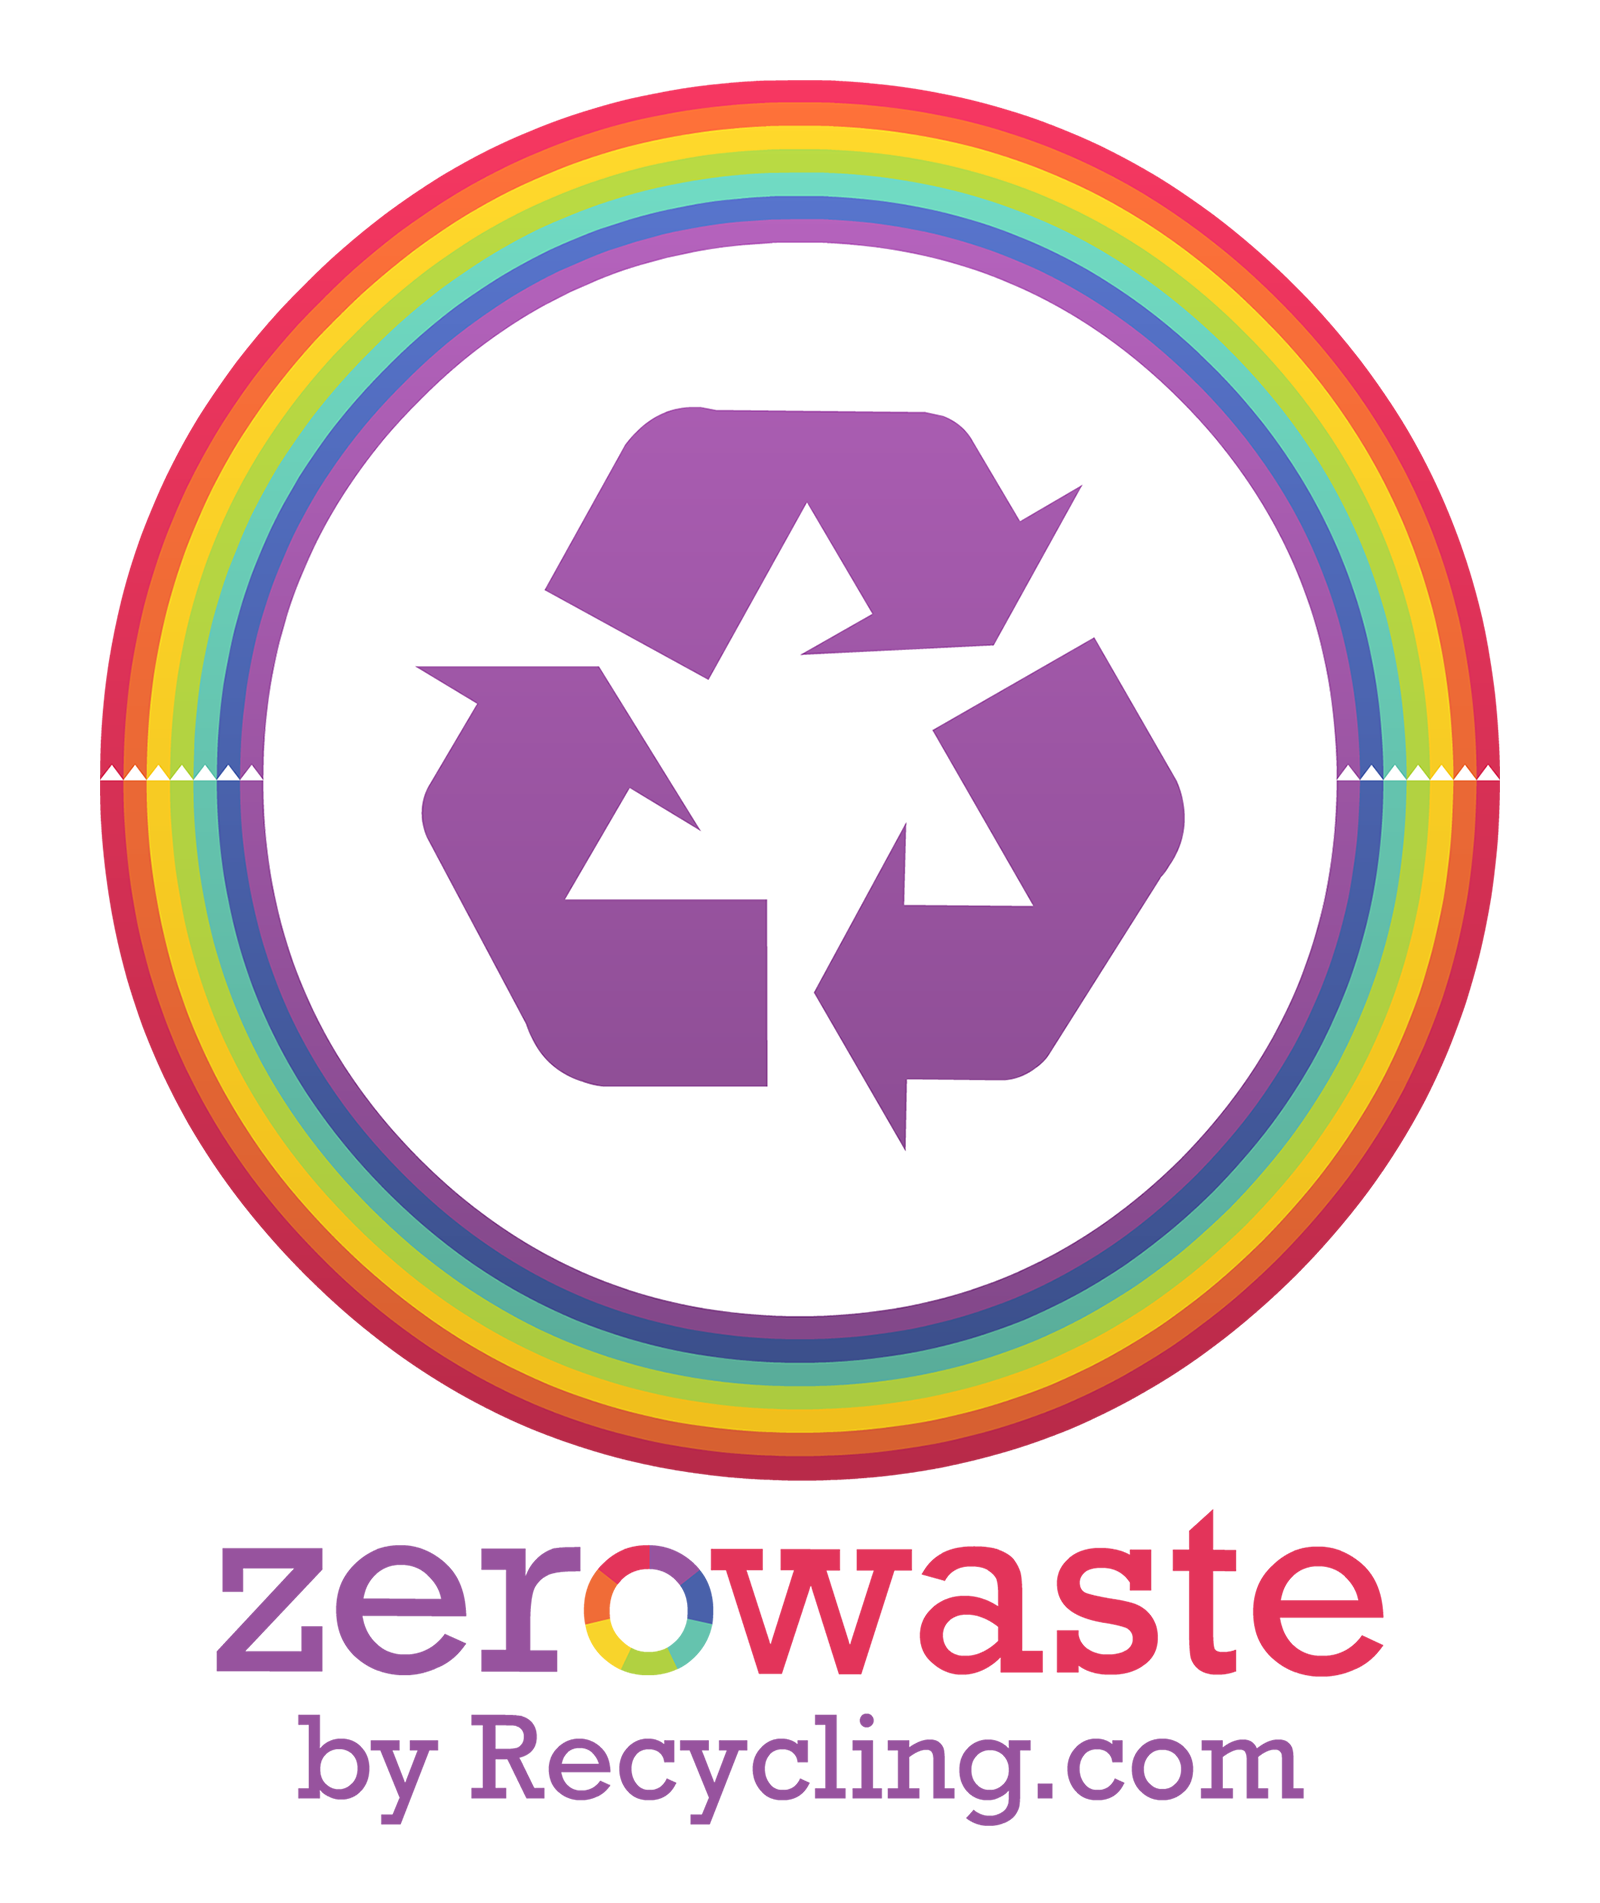 Download Zero Waste Symbol or Logo by Recycling.com.